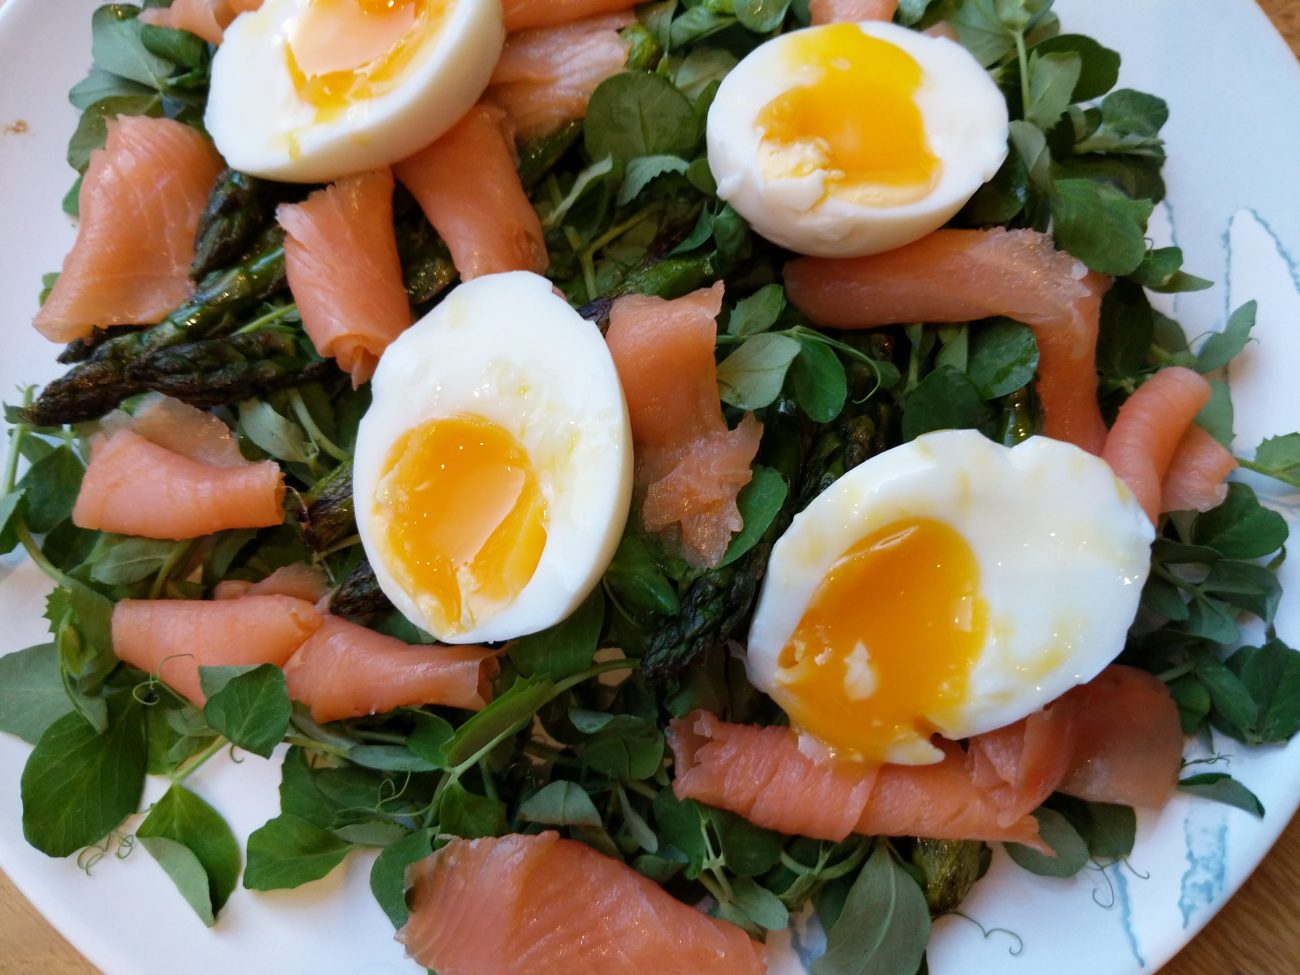 Smoked Salmon, Asparagus, Pea Shoots and Egg Salad